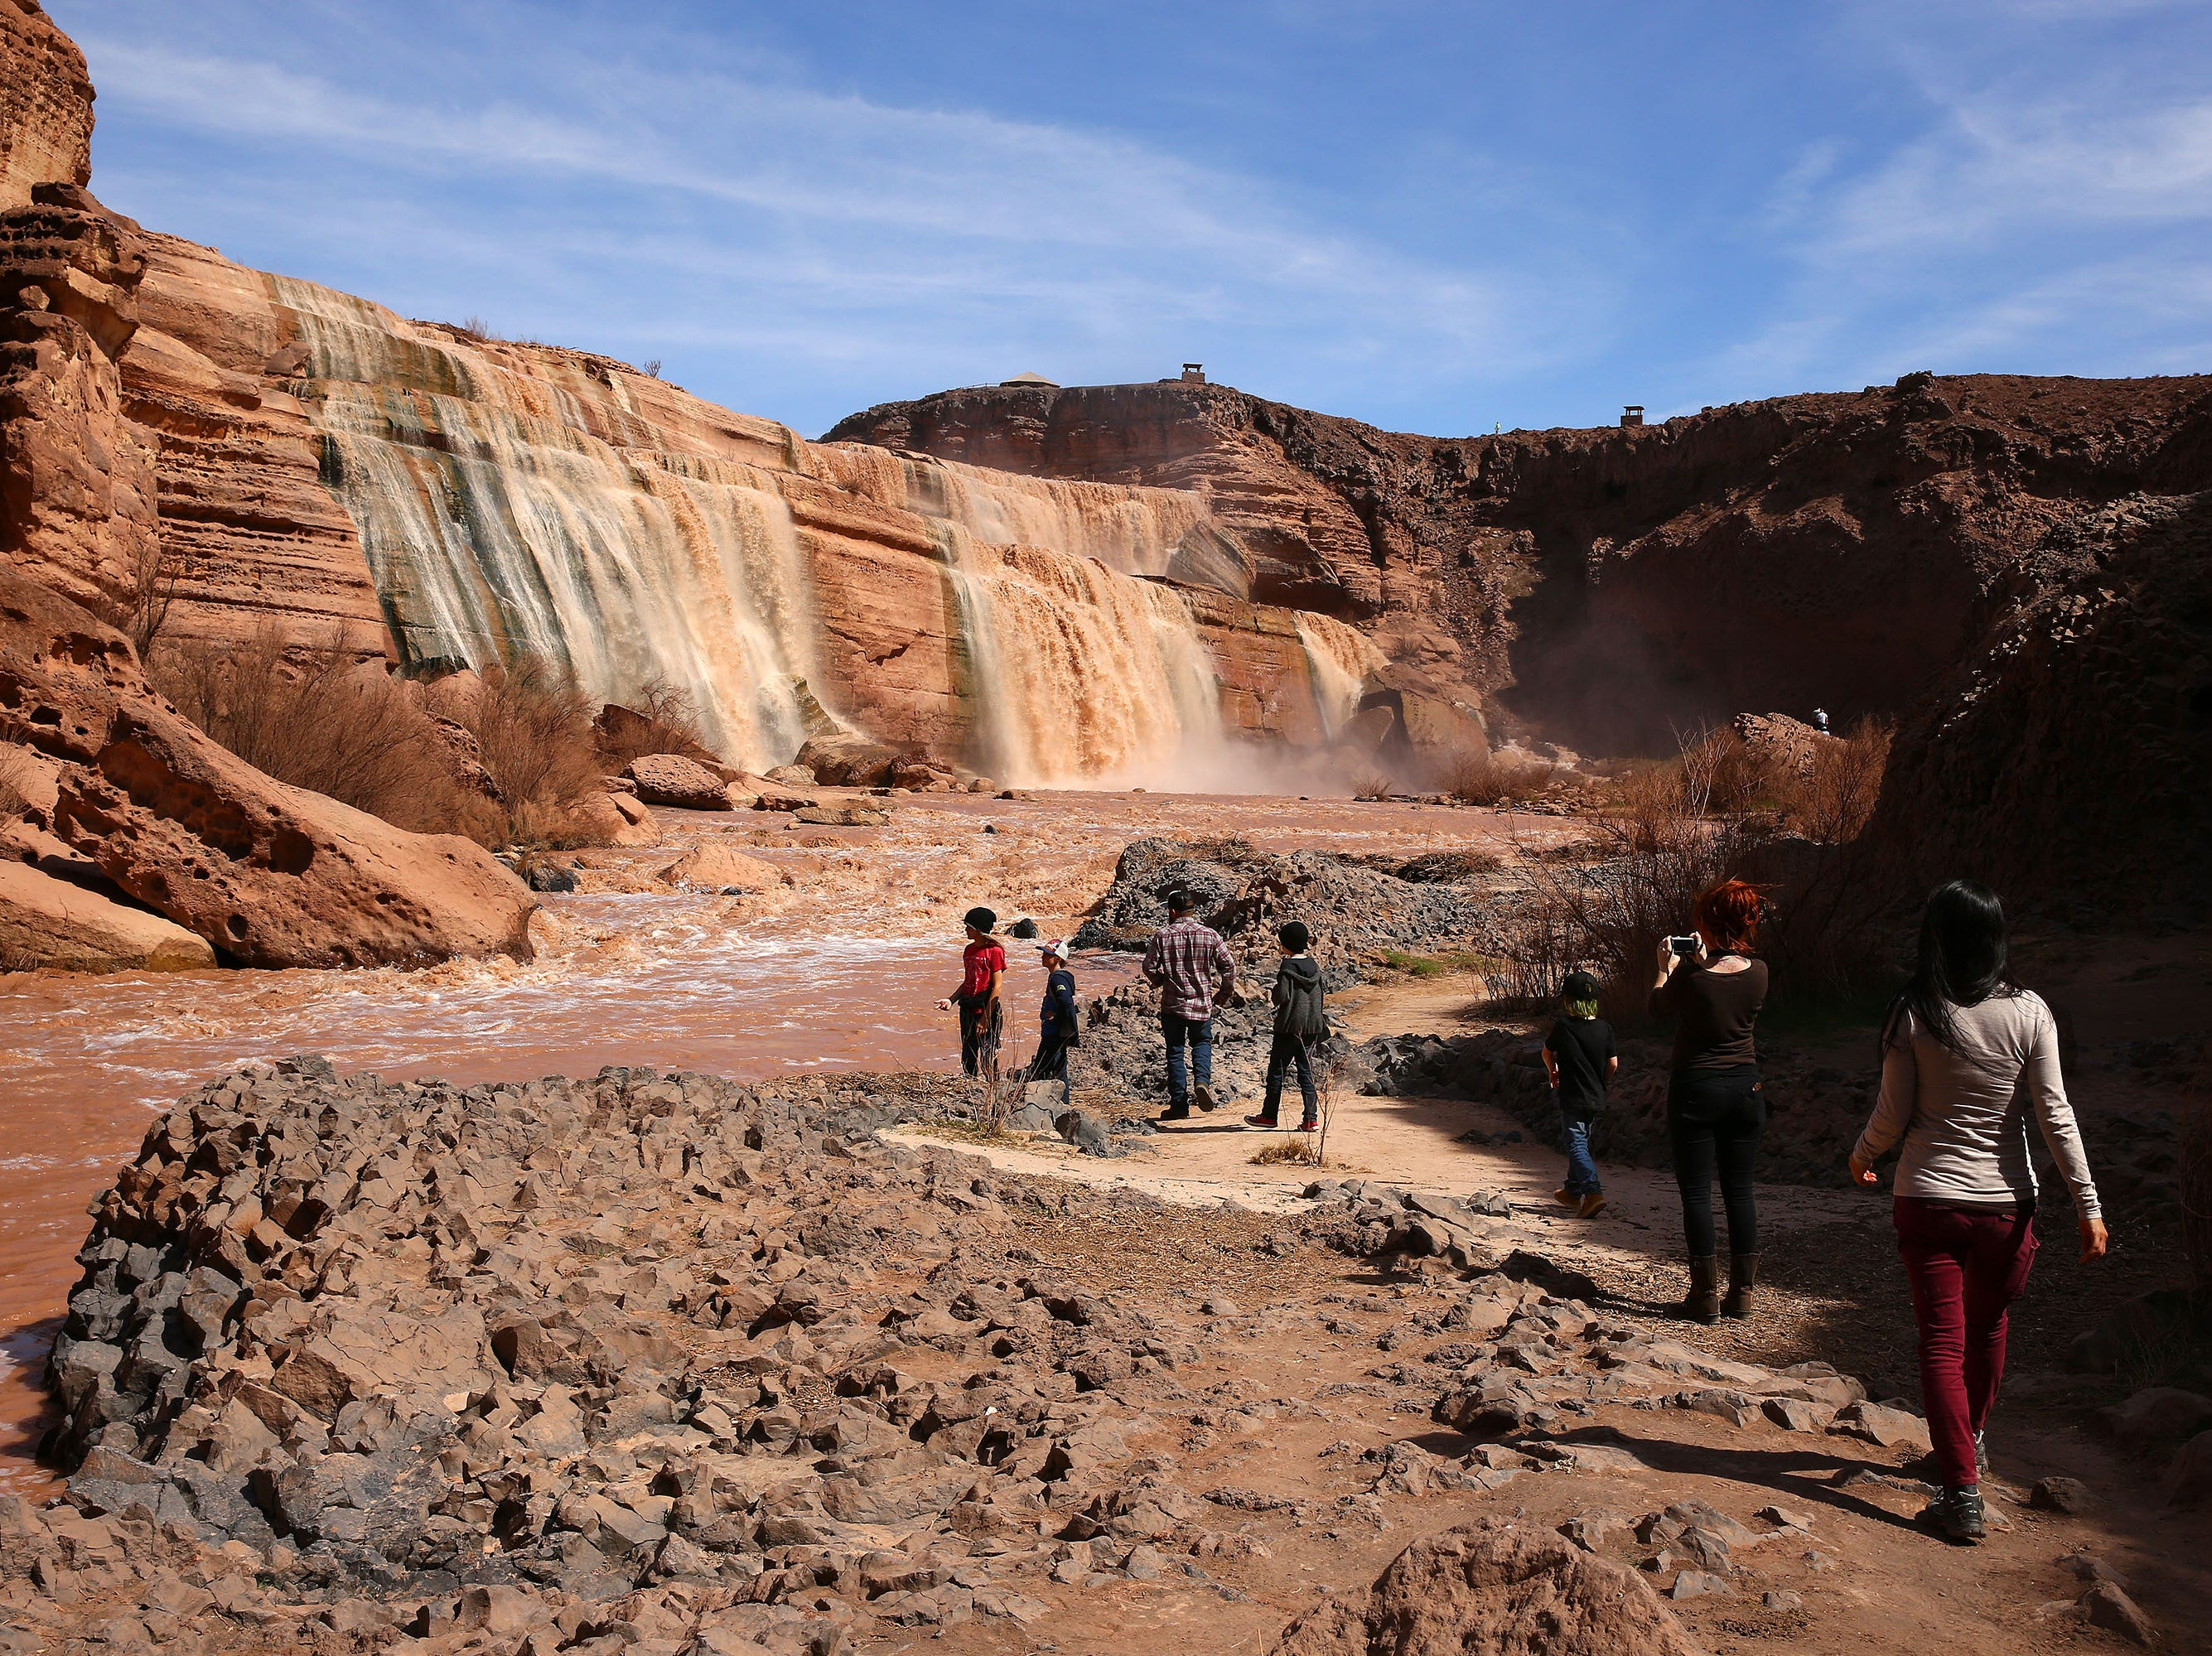 Tourists hike into the canyon for a waterside view of Grand Falls in the Painted Desert on the Navajo Nation on March 28, 2019, near Leupp, Arizona. Melted snow and rain travels down the Little Colorado River to the 185-foot fall a.k.a. Chocolate Falls. Grand Falls is 18 feet taller than Niagara Falls.